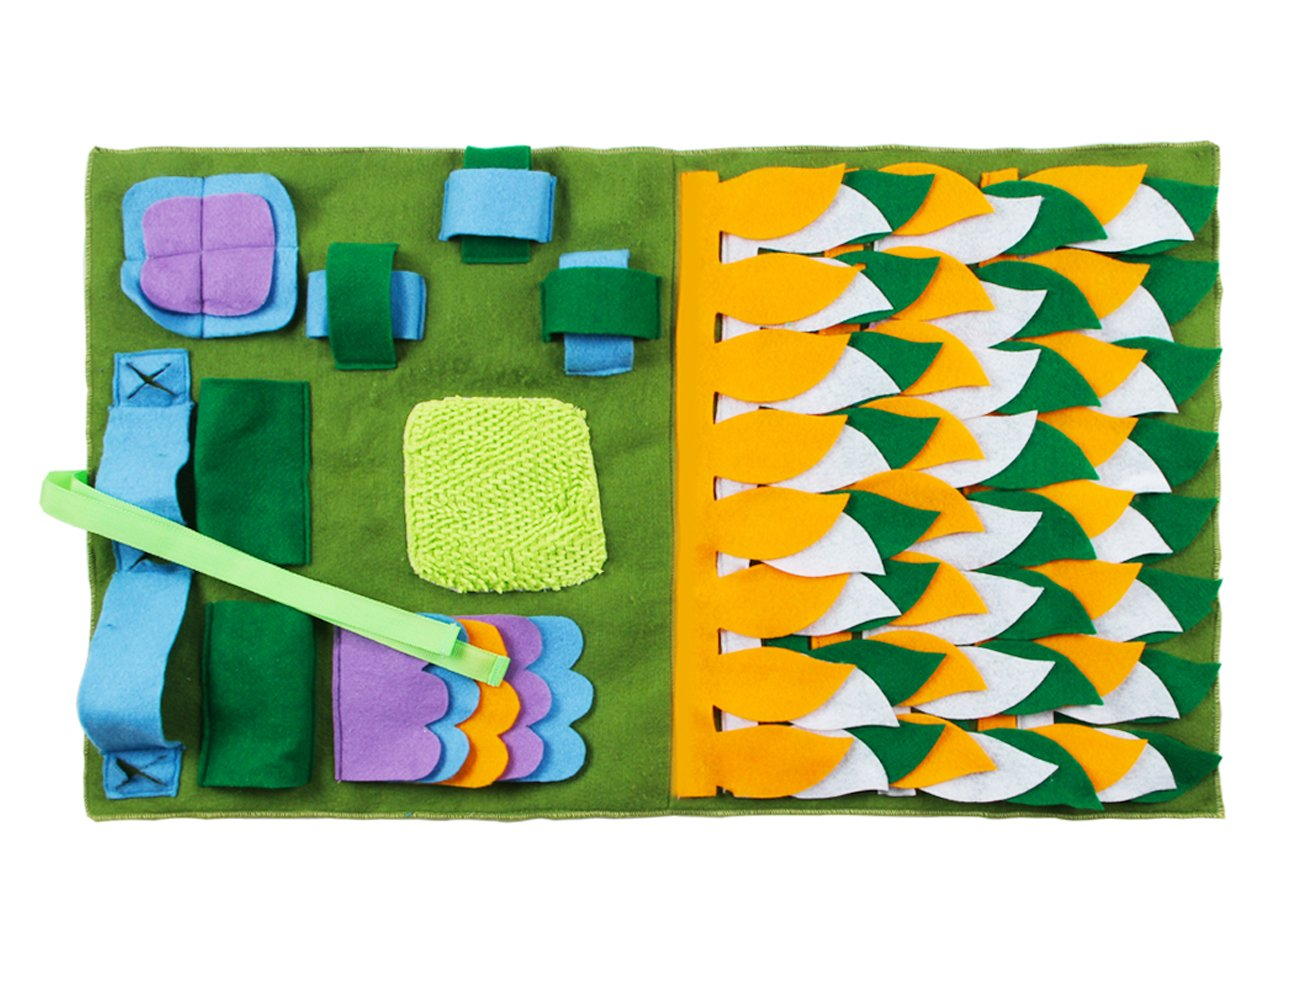 IFOYO Dog Feeding Mat, Dog Snuffle Mat Small Dog Training Pad Pet Nose Work Blanket Non Slip Pet Activity Mat for Foraging Skill, Stress Release, (S, Green, 17.7x19.7in / 45x50cm)